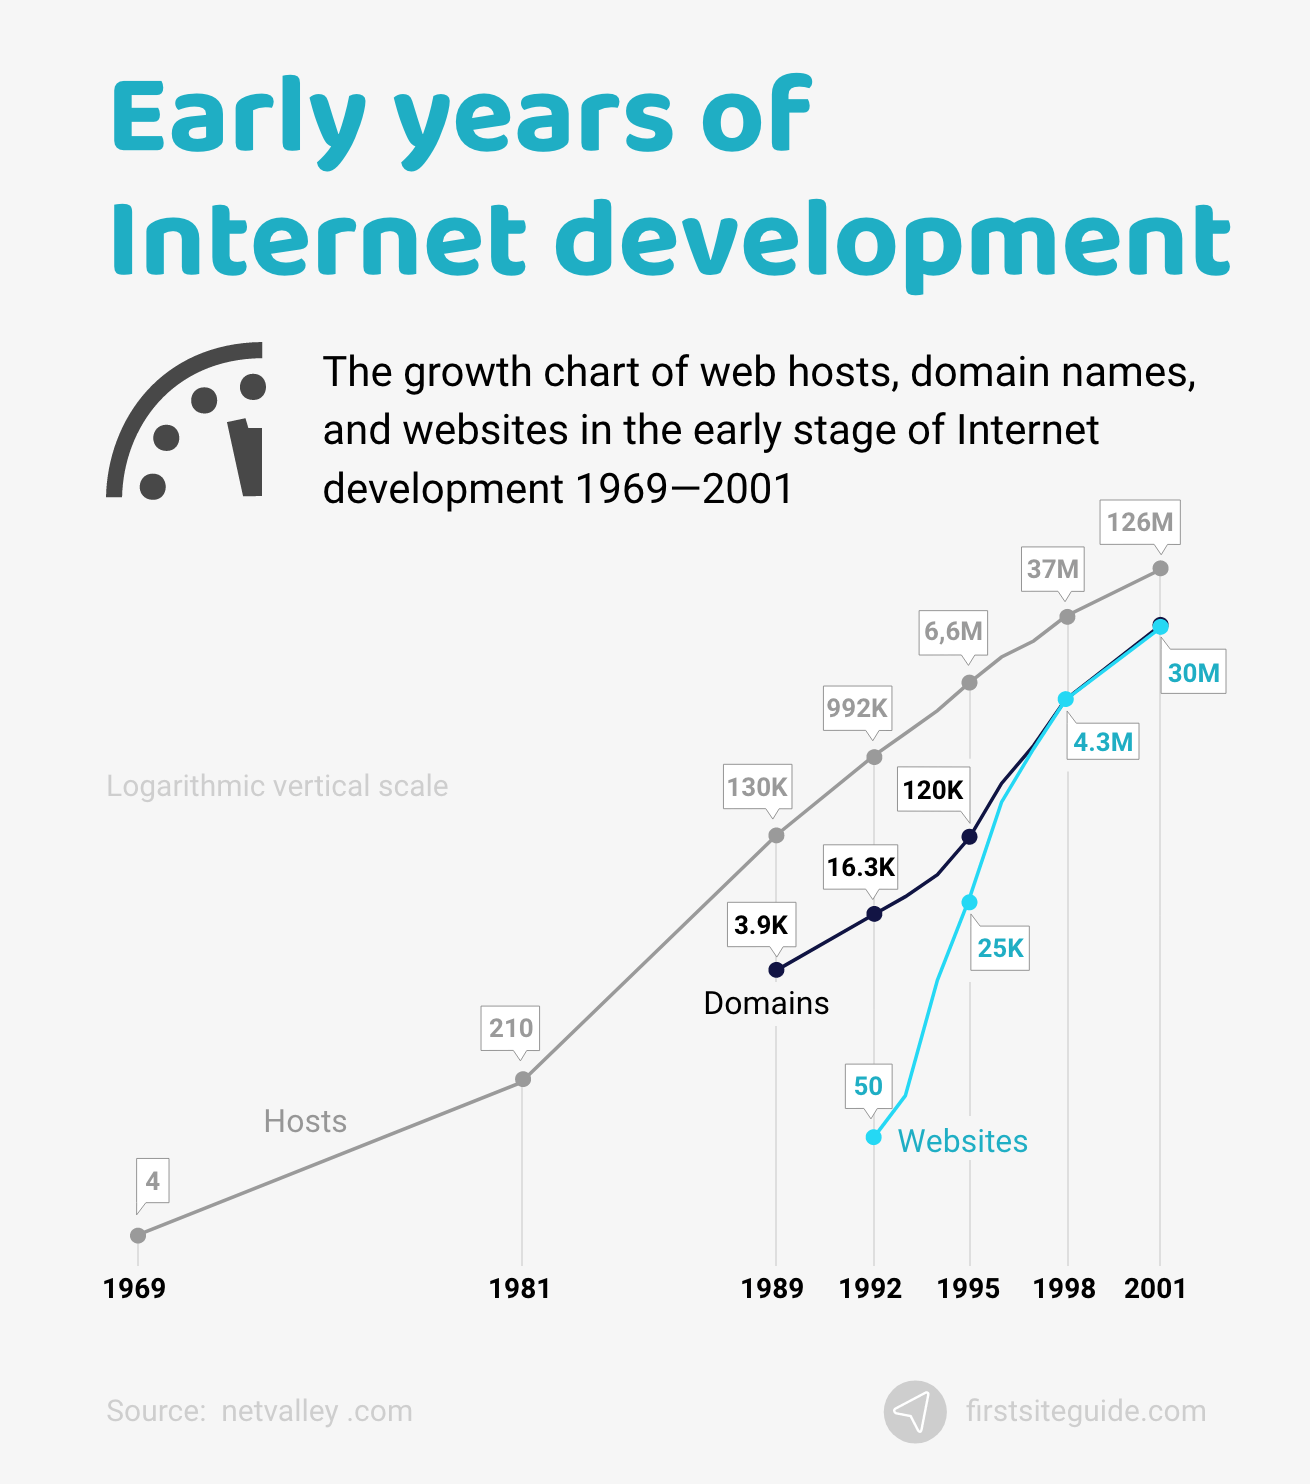 Early years of Internet development